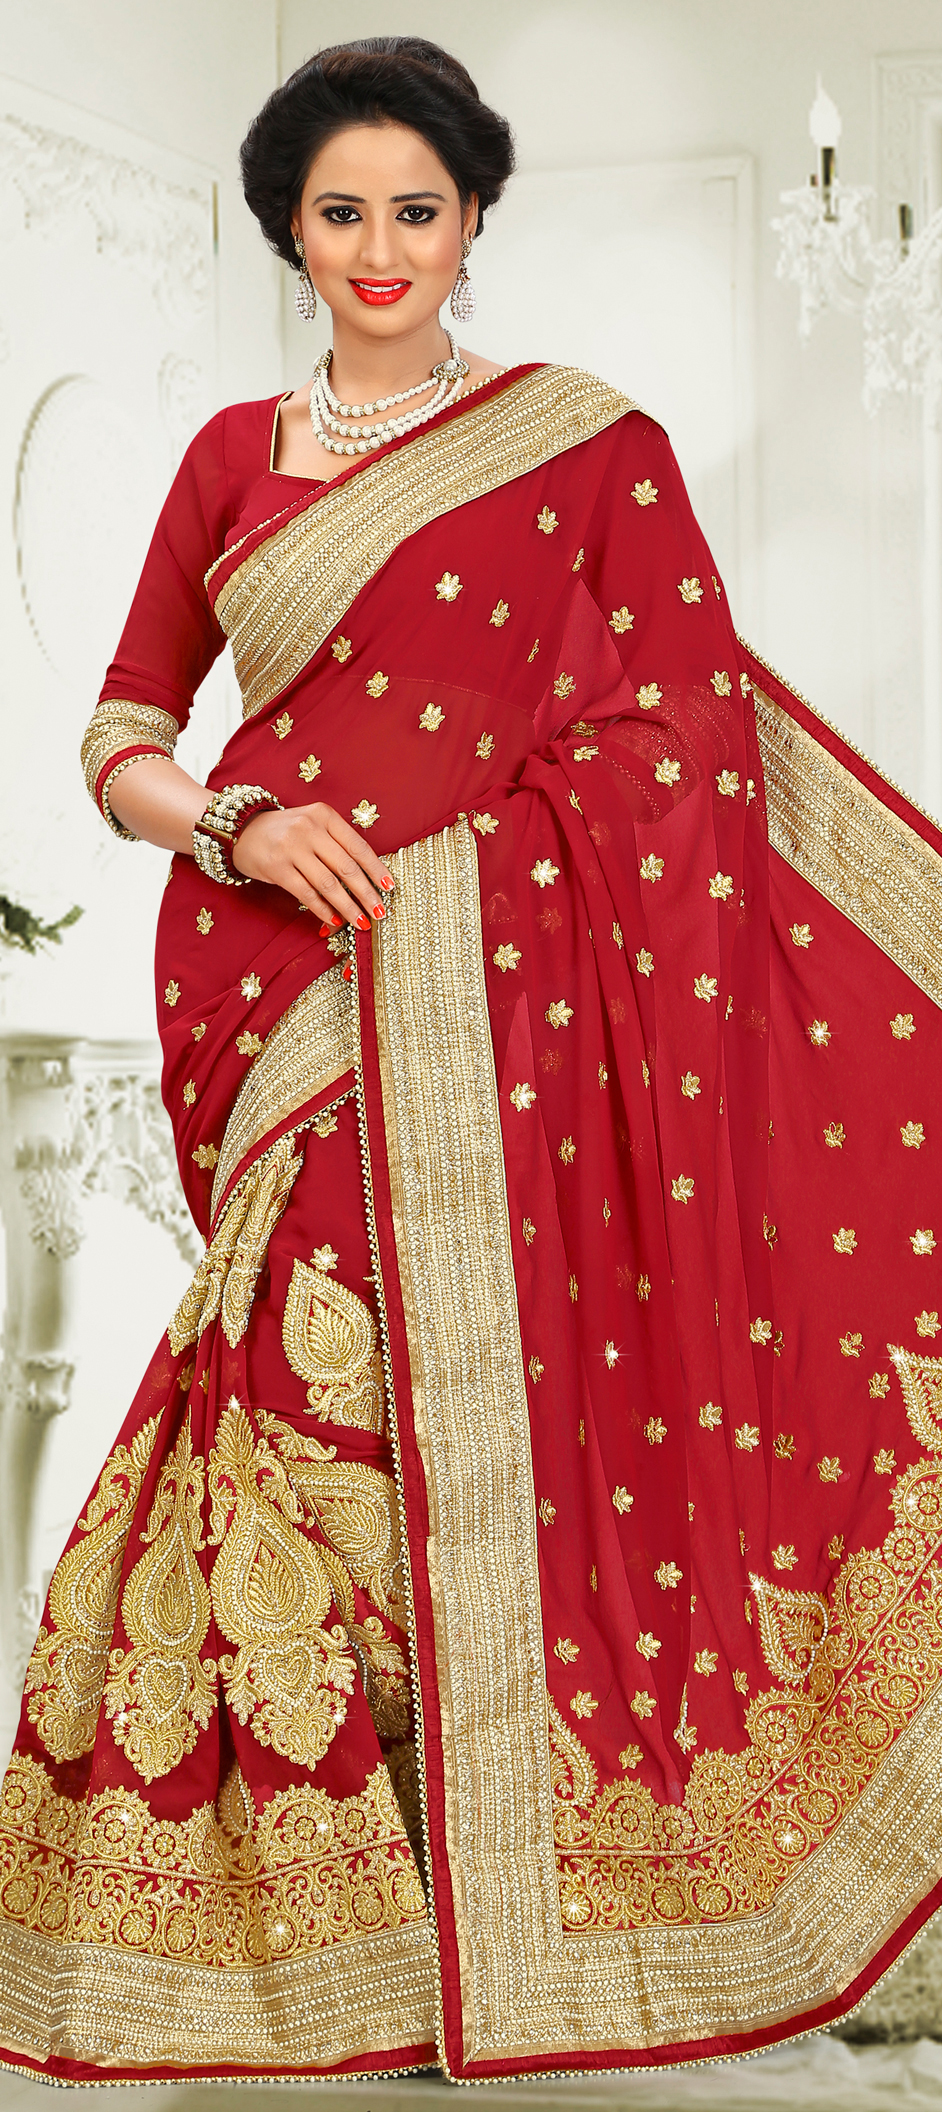 180401: Red and Maroon color family Bridal Wedding Sarees,Party Wear ...